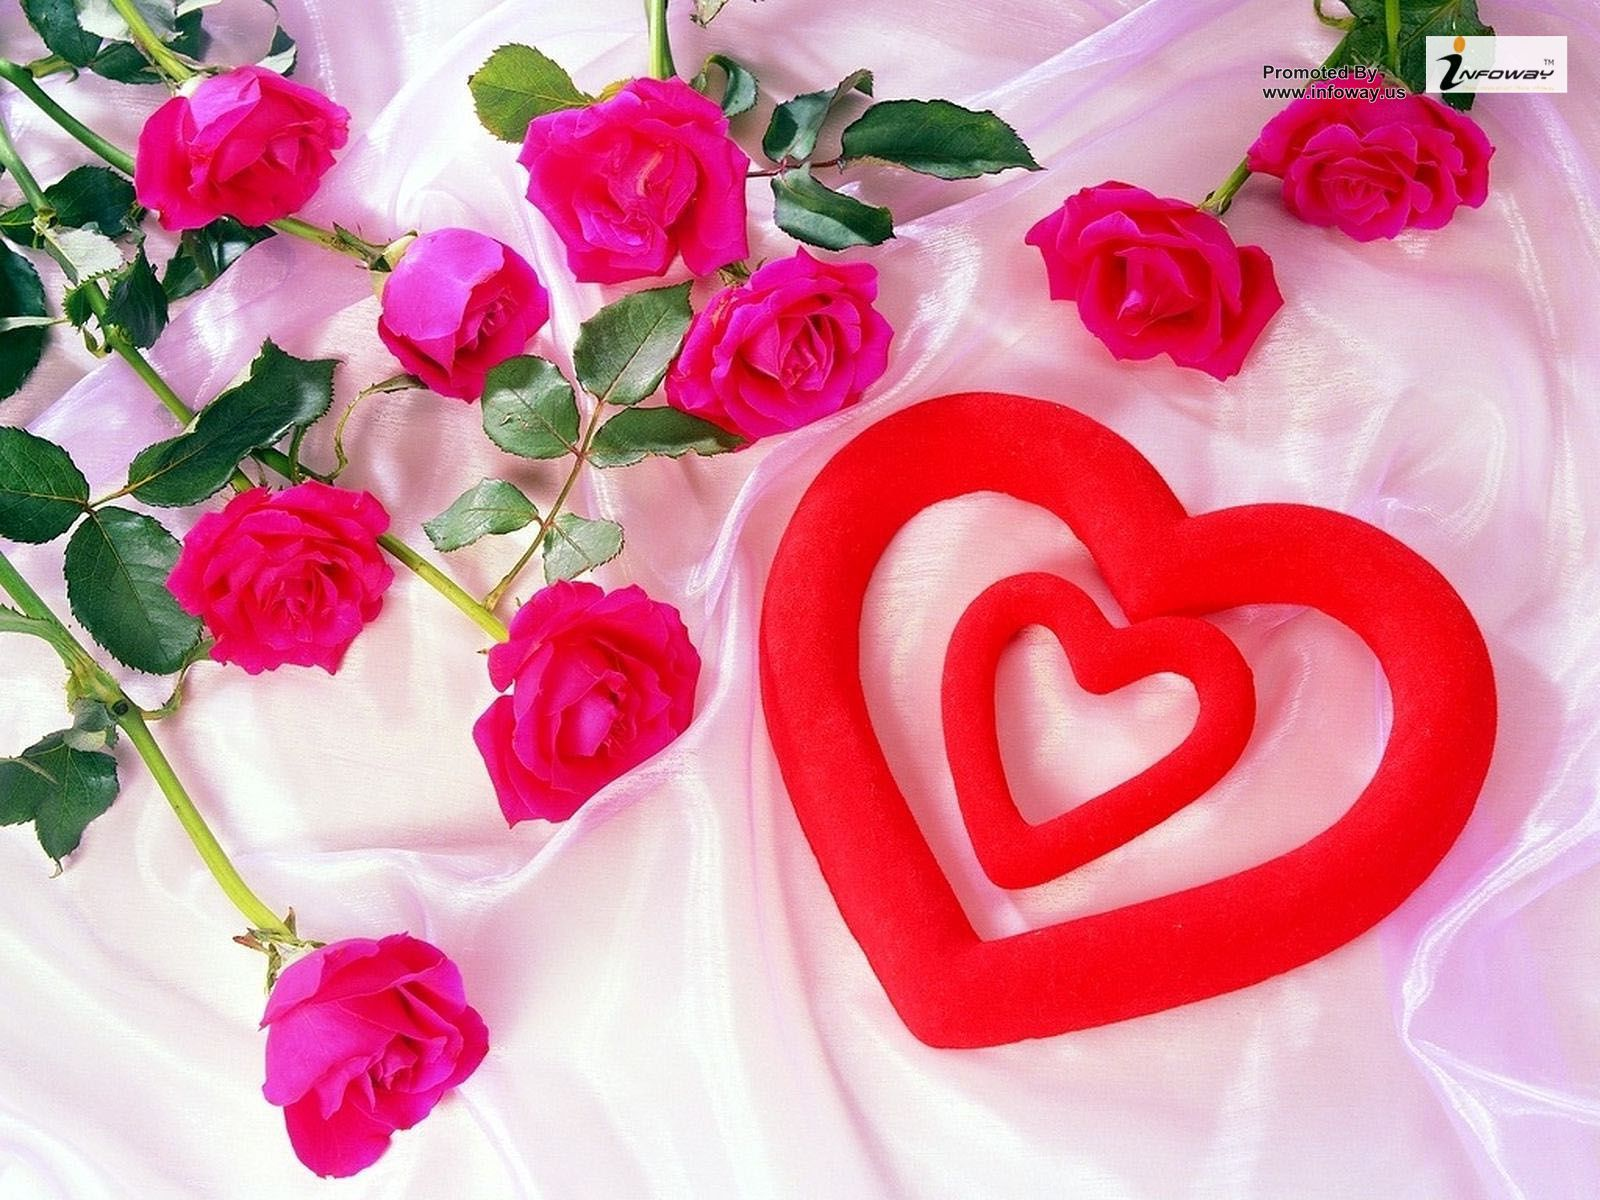 Wonderful Love Wallpaper For Any Query Email Sales Infoway Us Flower Images Wallpapers Love Flowers Hd Flower Wallpaper